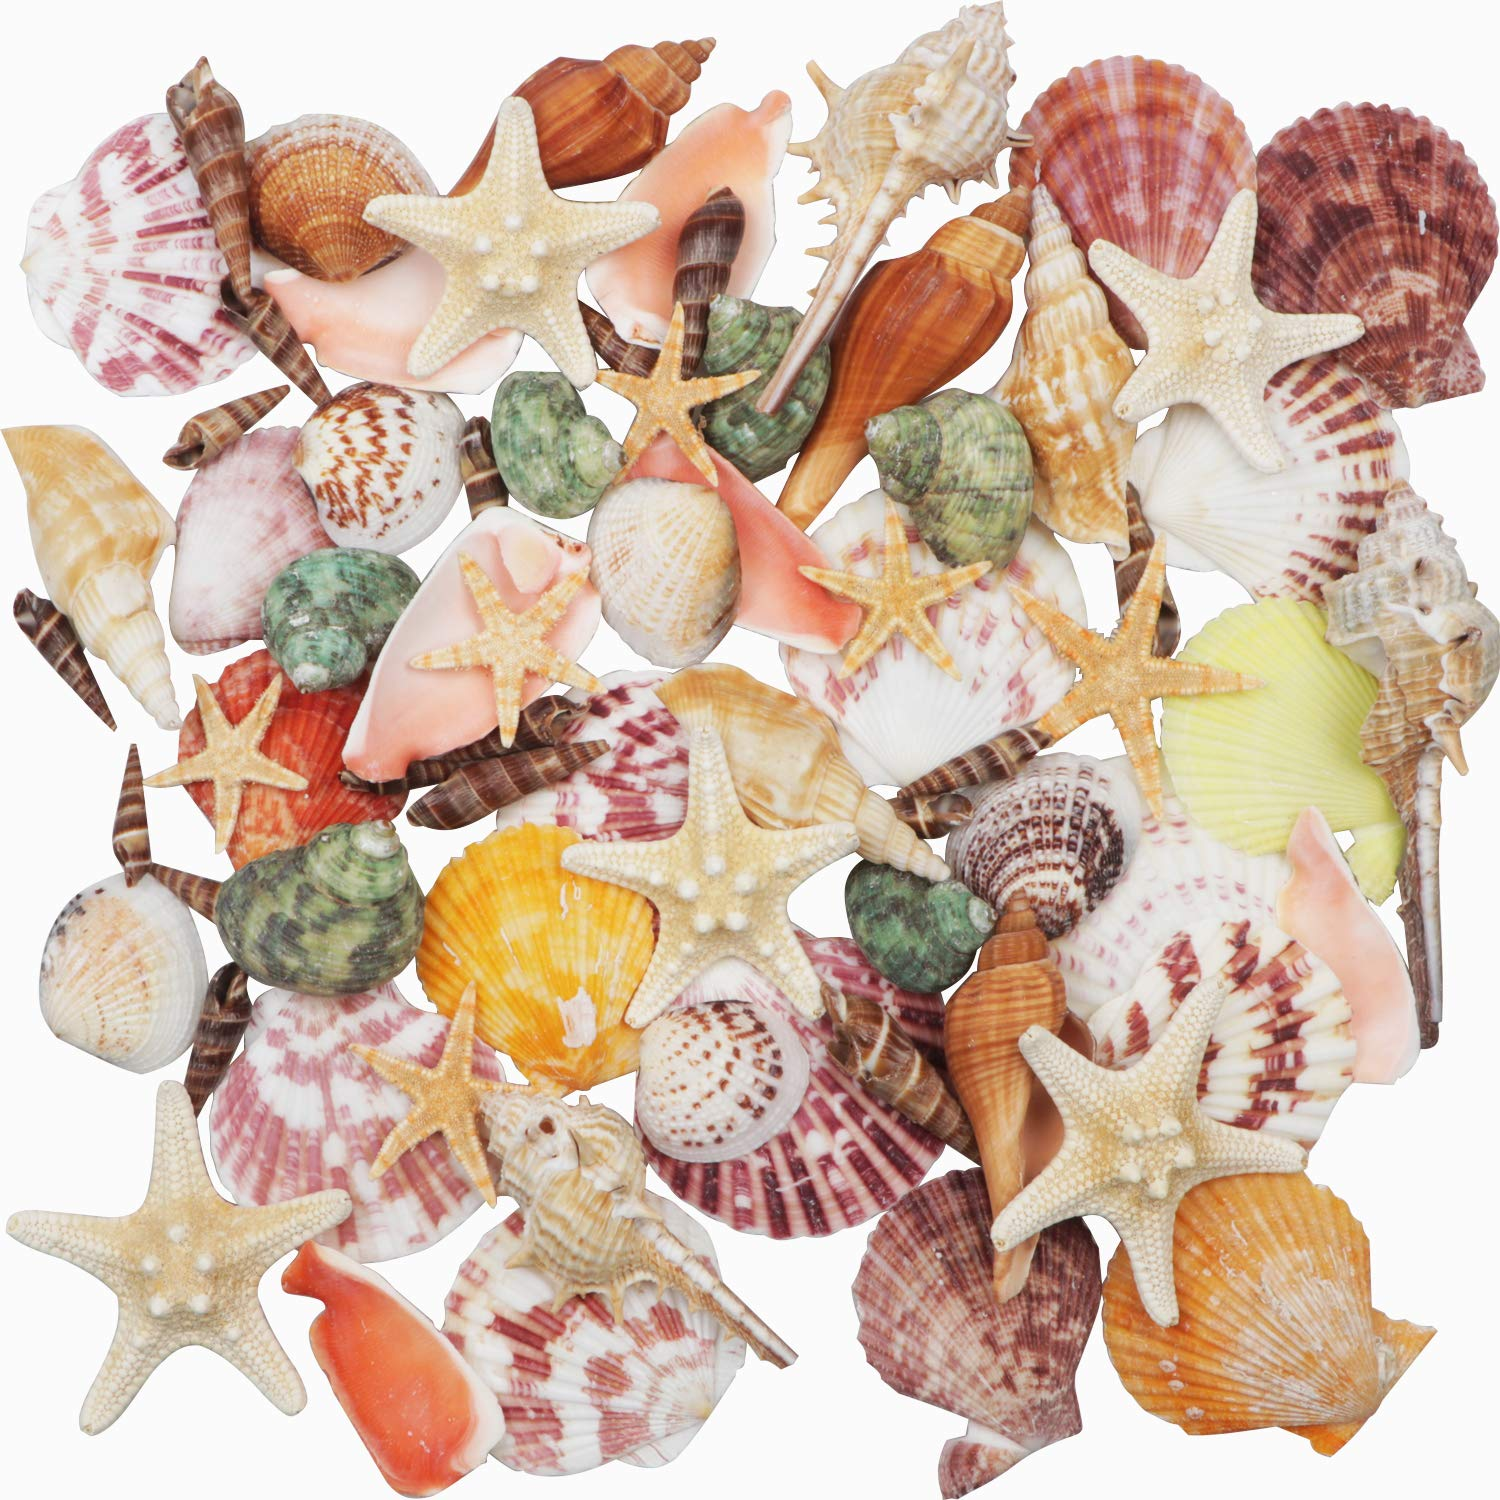 "Sea Shells Mixed Beach Seashells 9 Kinds 1.2""-3.5 ""Natural Seashells and 2 Kinds Starfish for Beach Theme Party Wedding Decorations DIY Crafts Home Decorations FishTank Supplies"